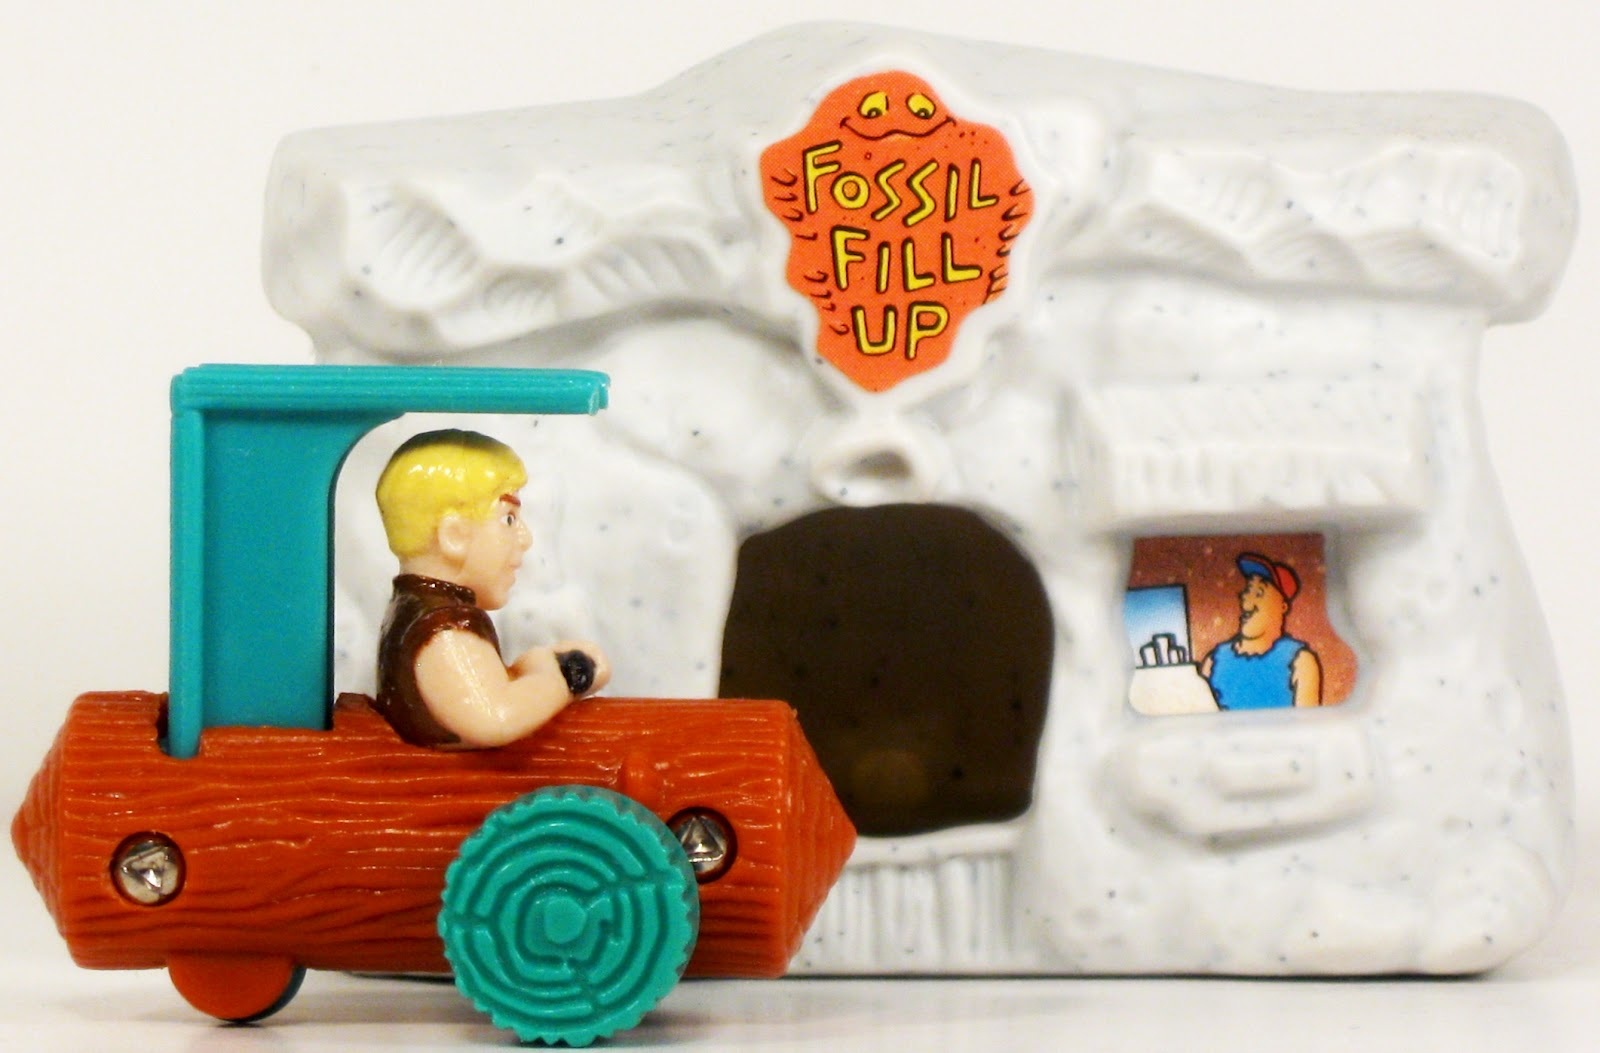 Toys and Stuff: McDonald\'s U.S. 1993 Barney & Fossil Fill-Up